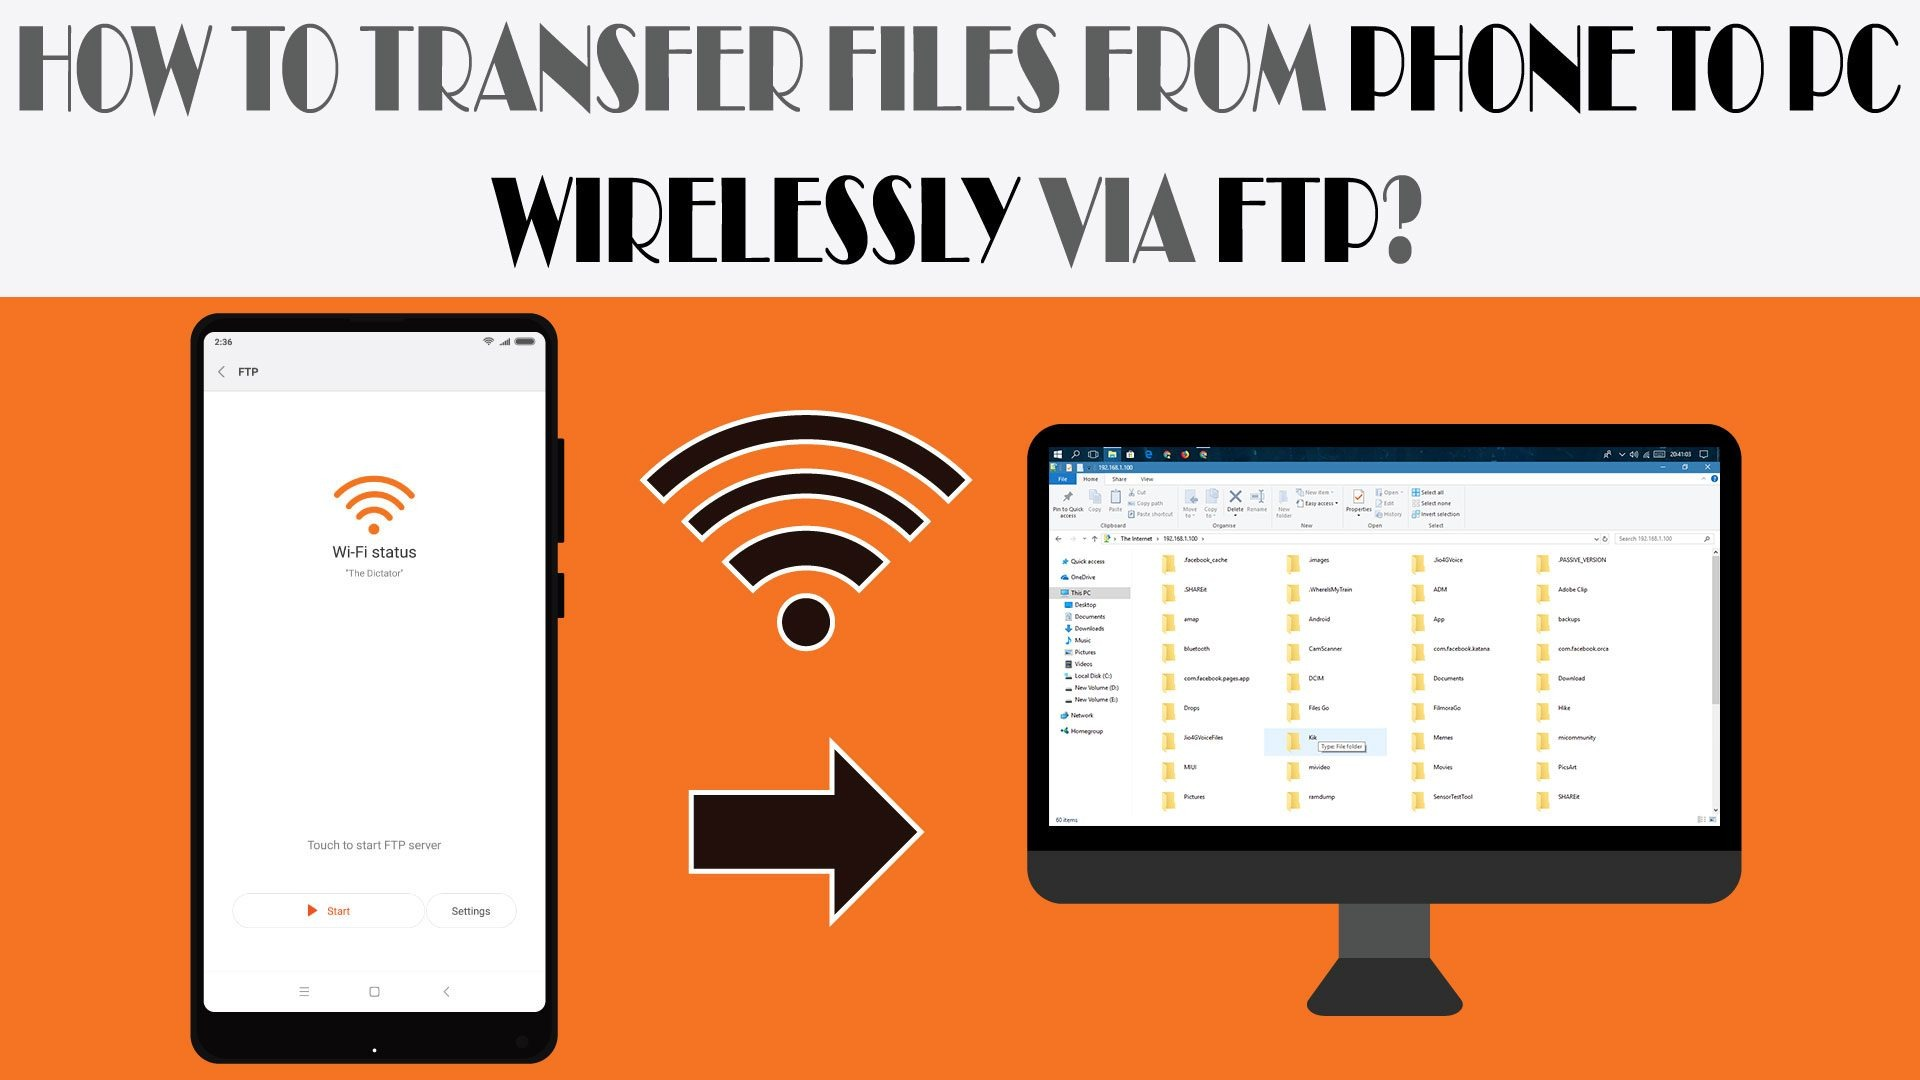 Wirelessly transfer files from phone via FTP